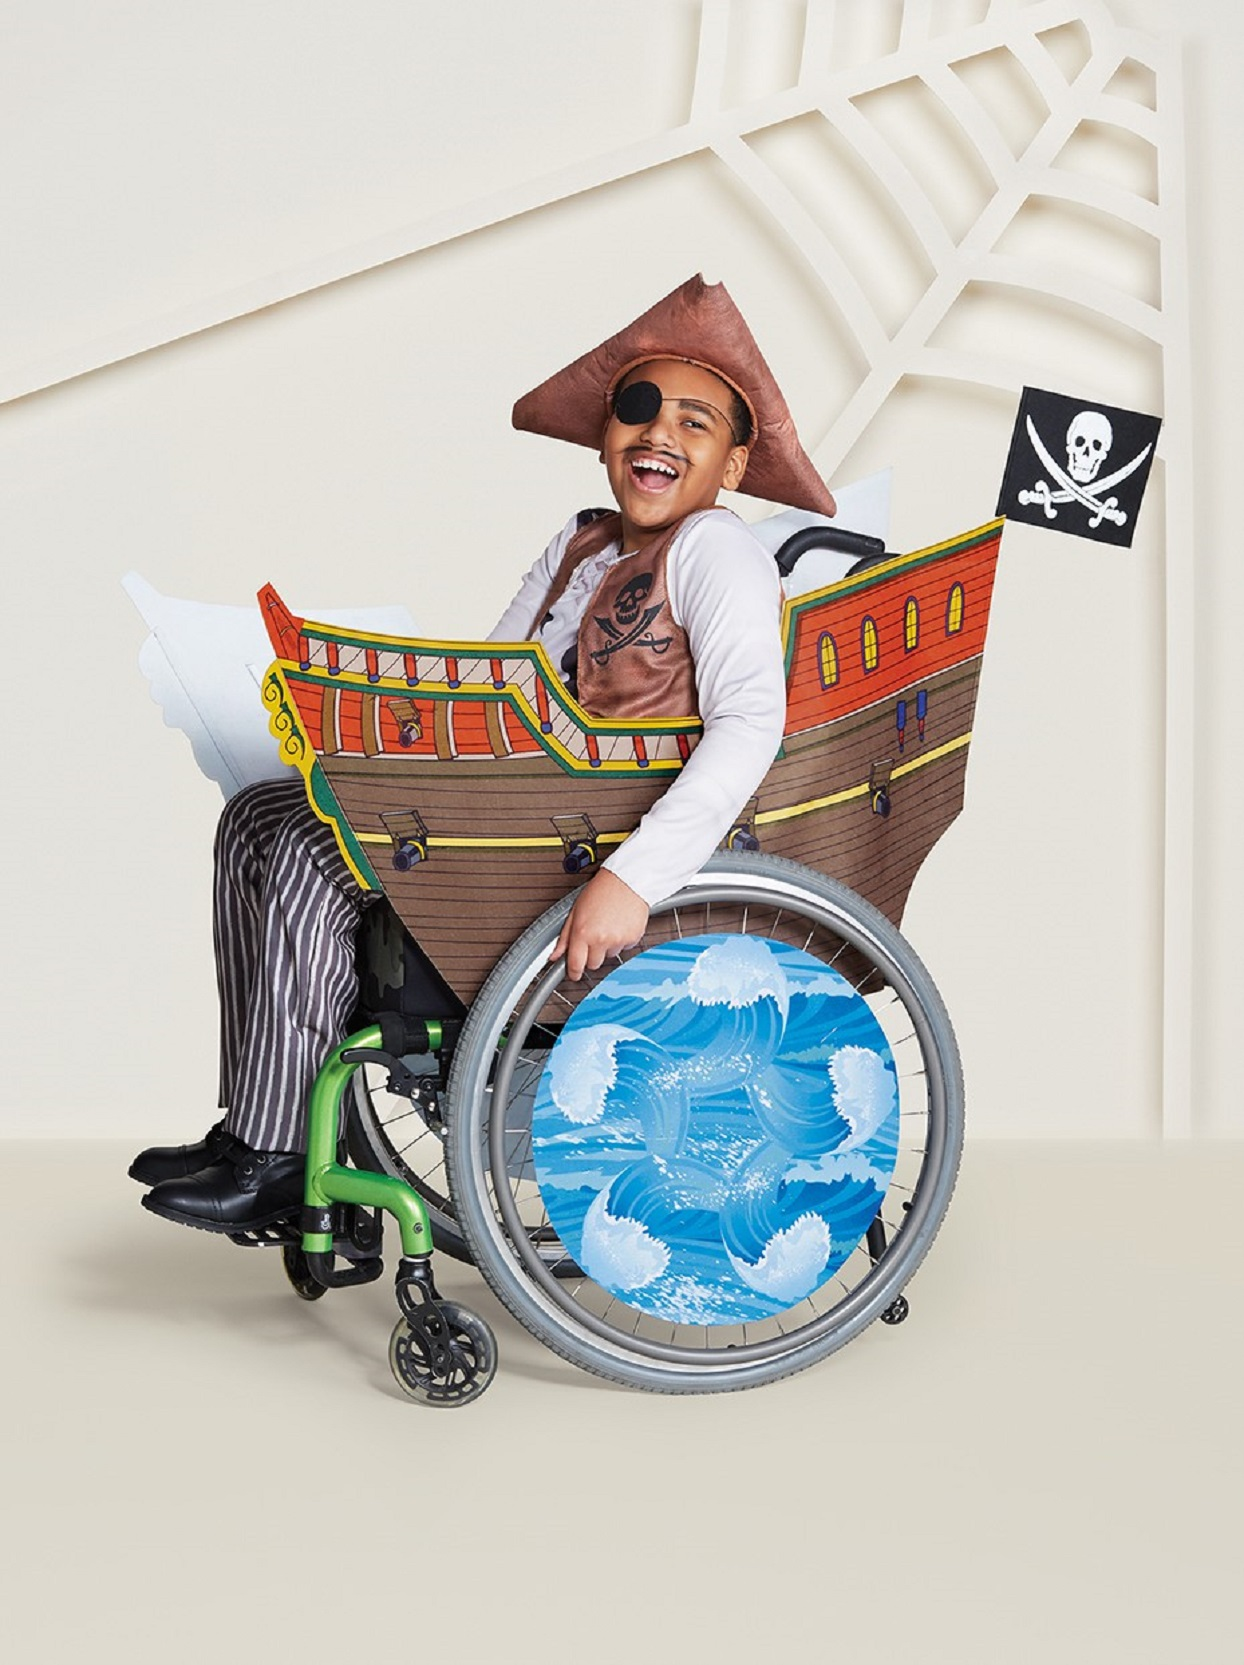 Target Just Released Adaptive Halloween Costumes for Kids with Disabilities